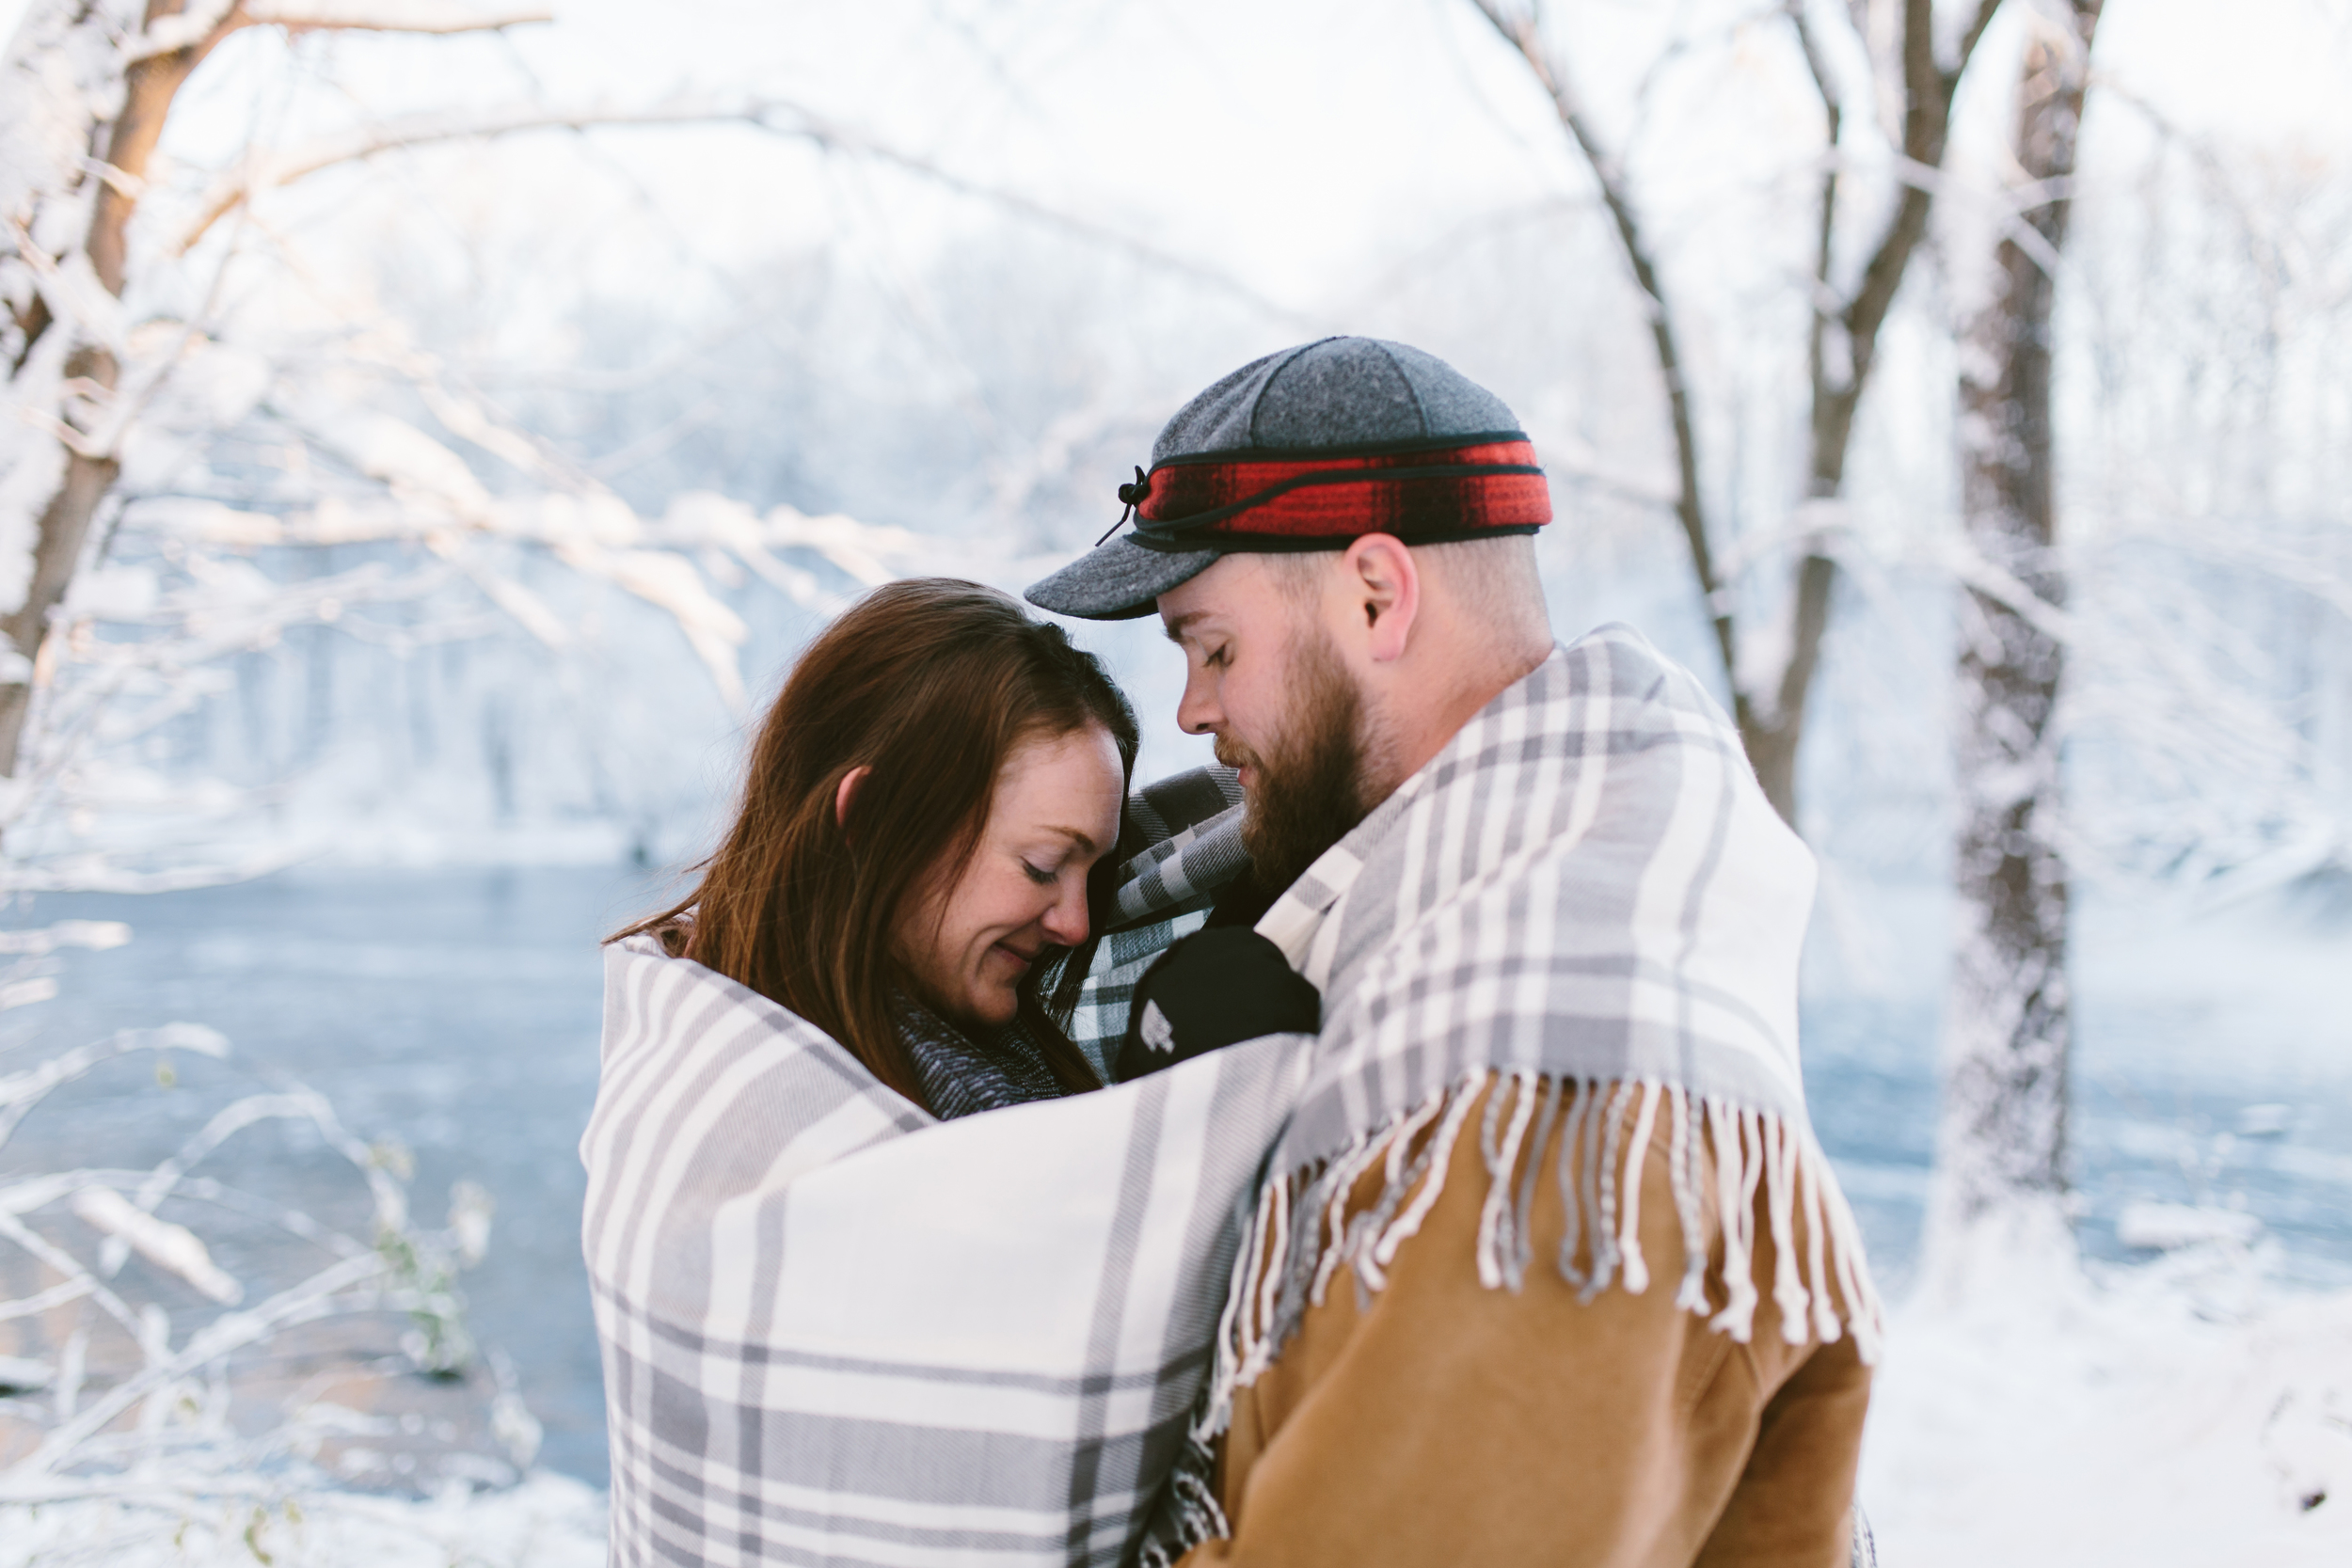 GRAND LEDGE, MI - ENGAGEMENT SESSION